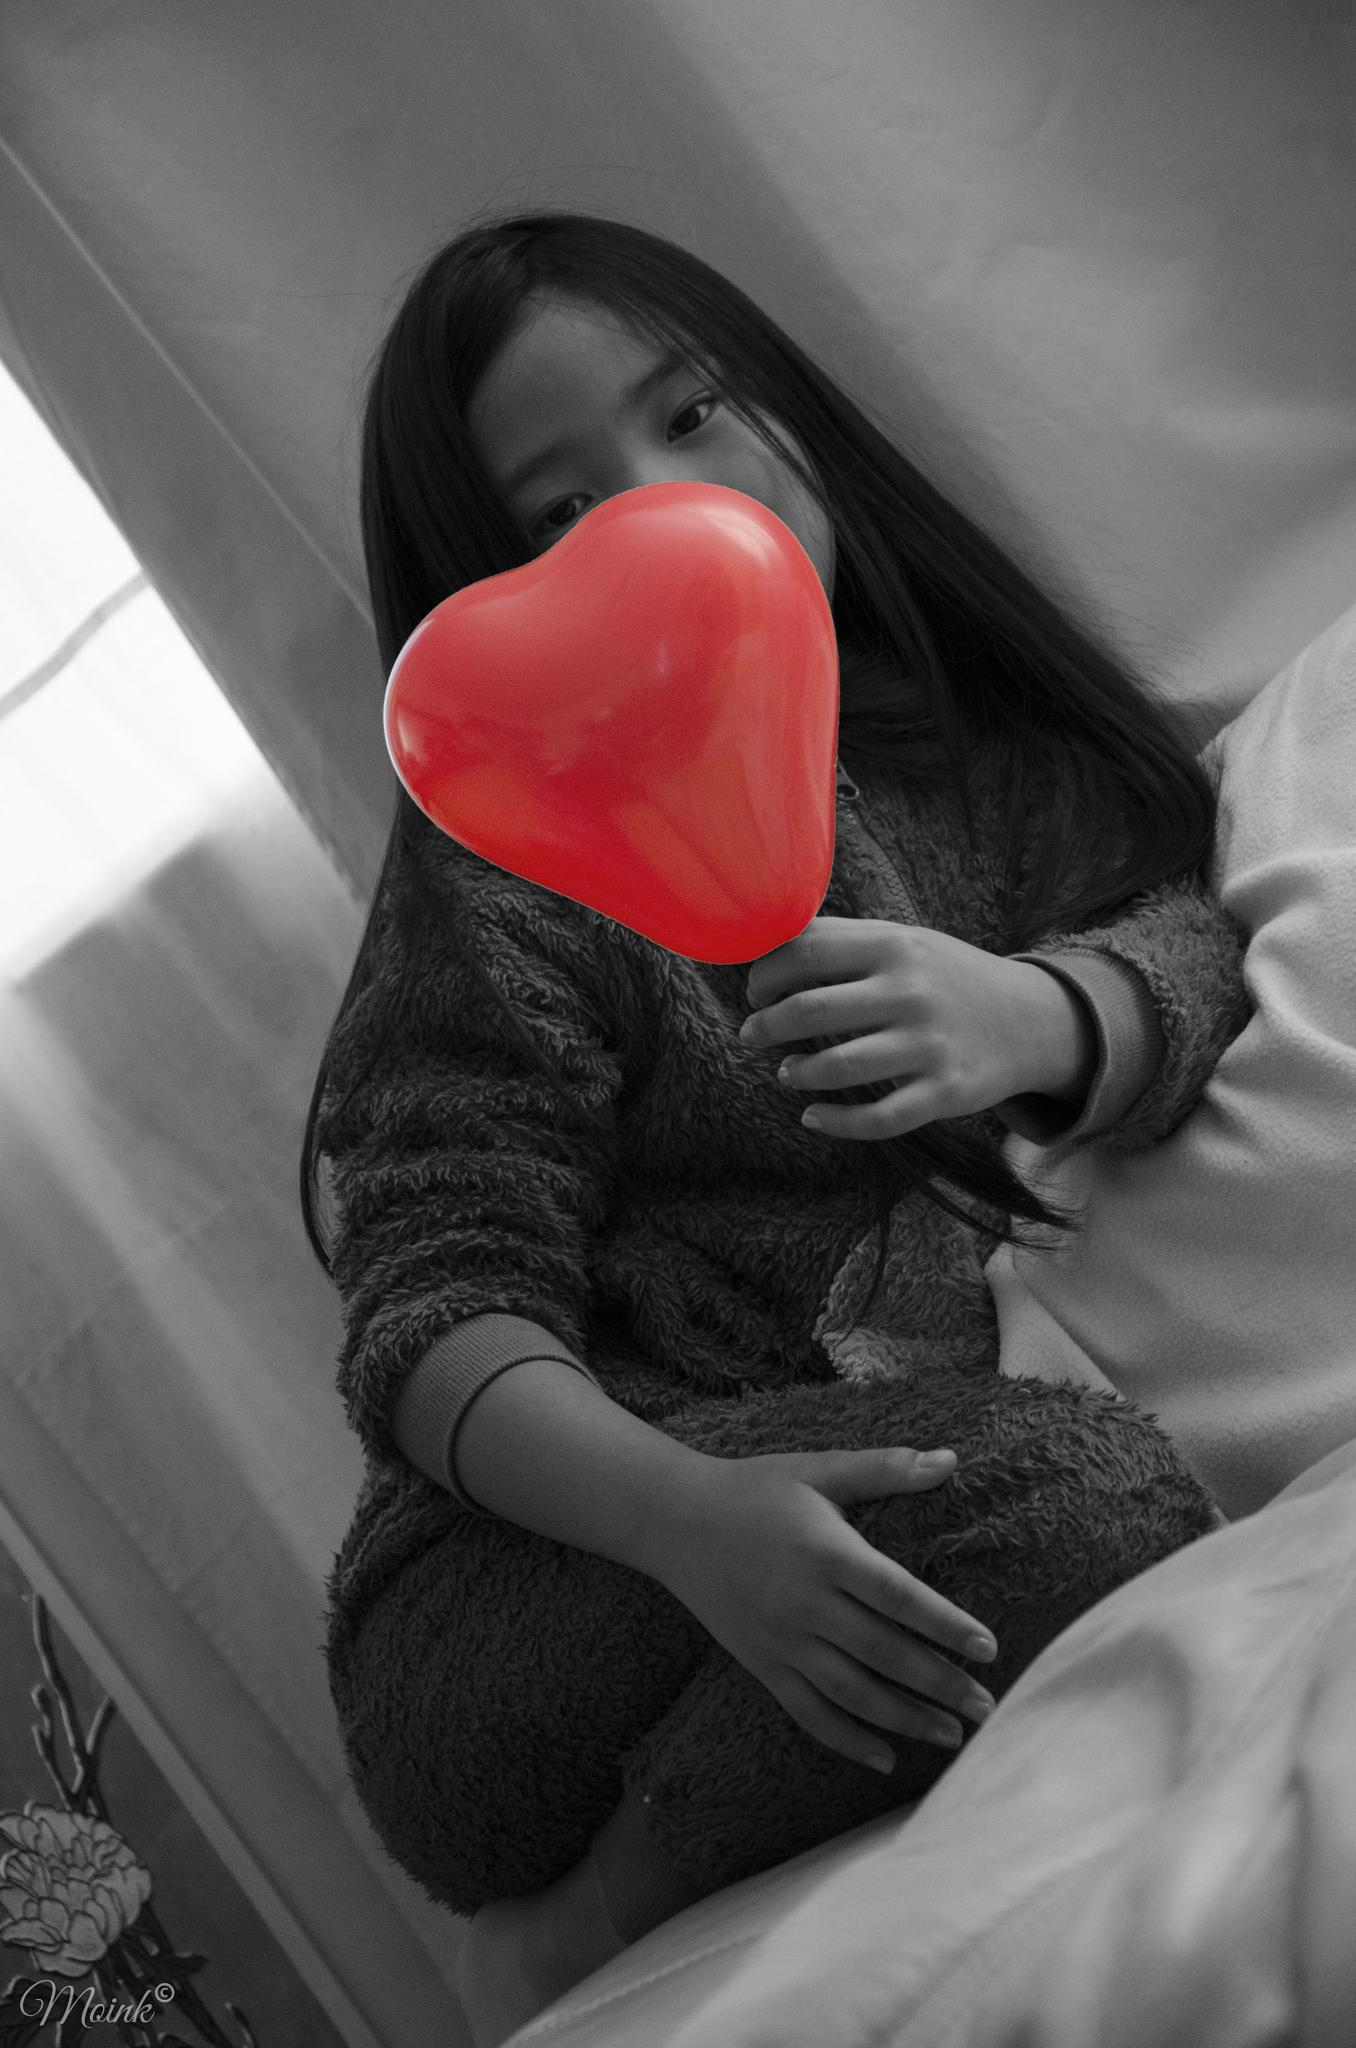 Red Heart Baloon by Michelangelo Macanas